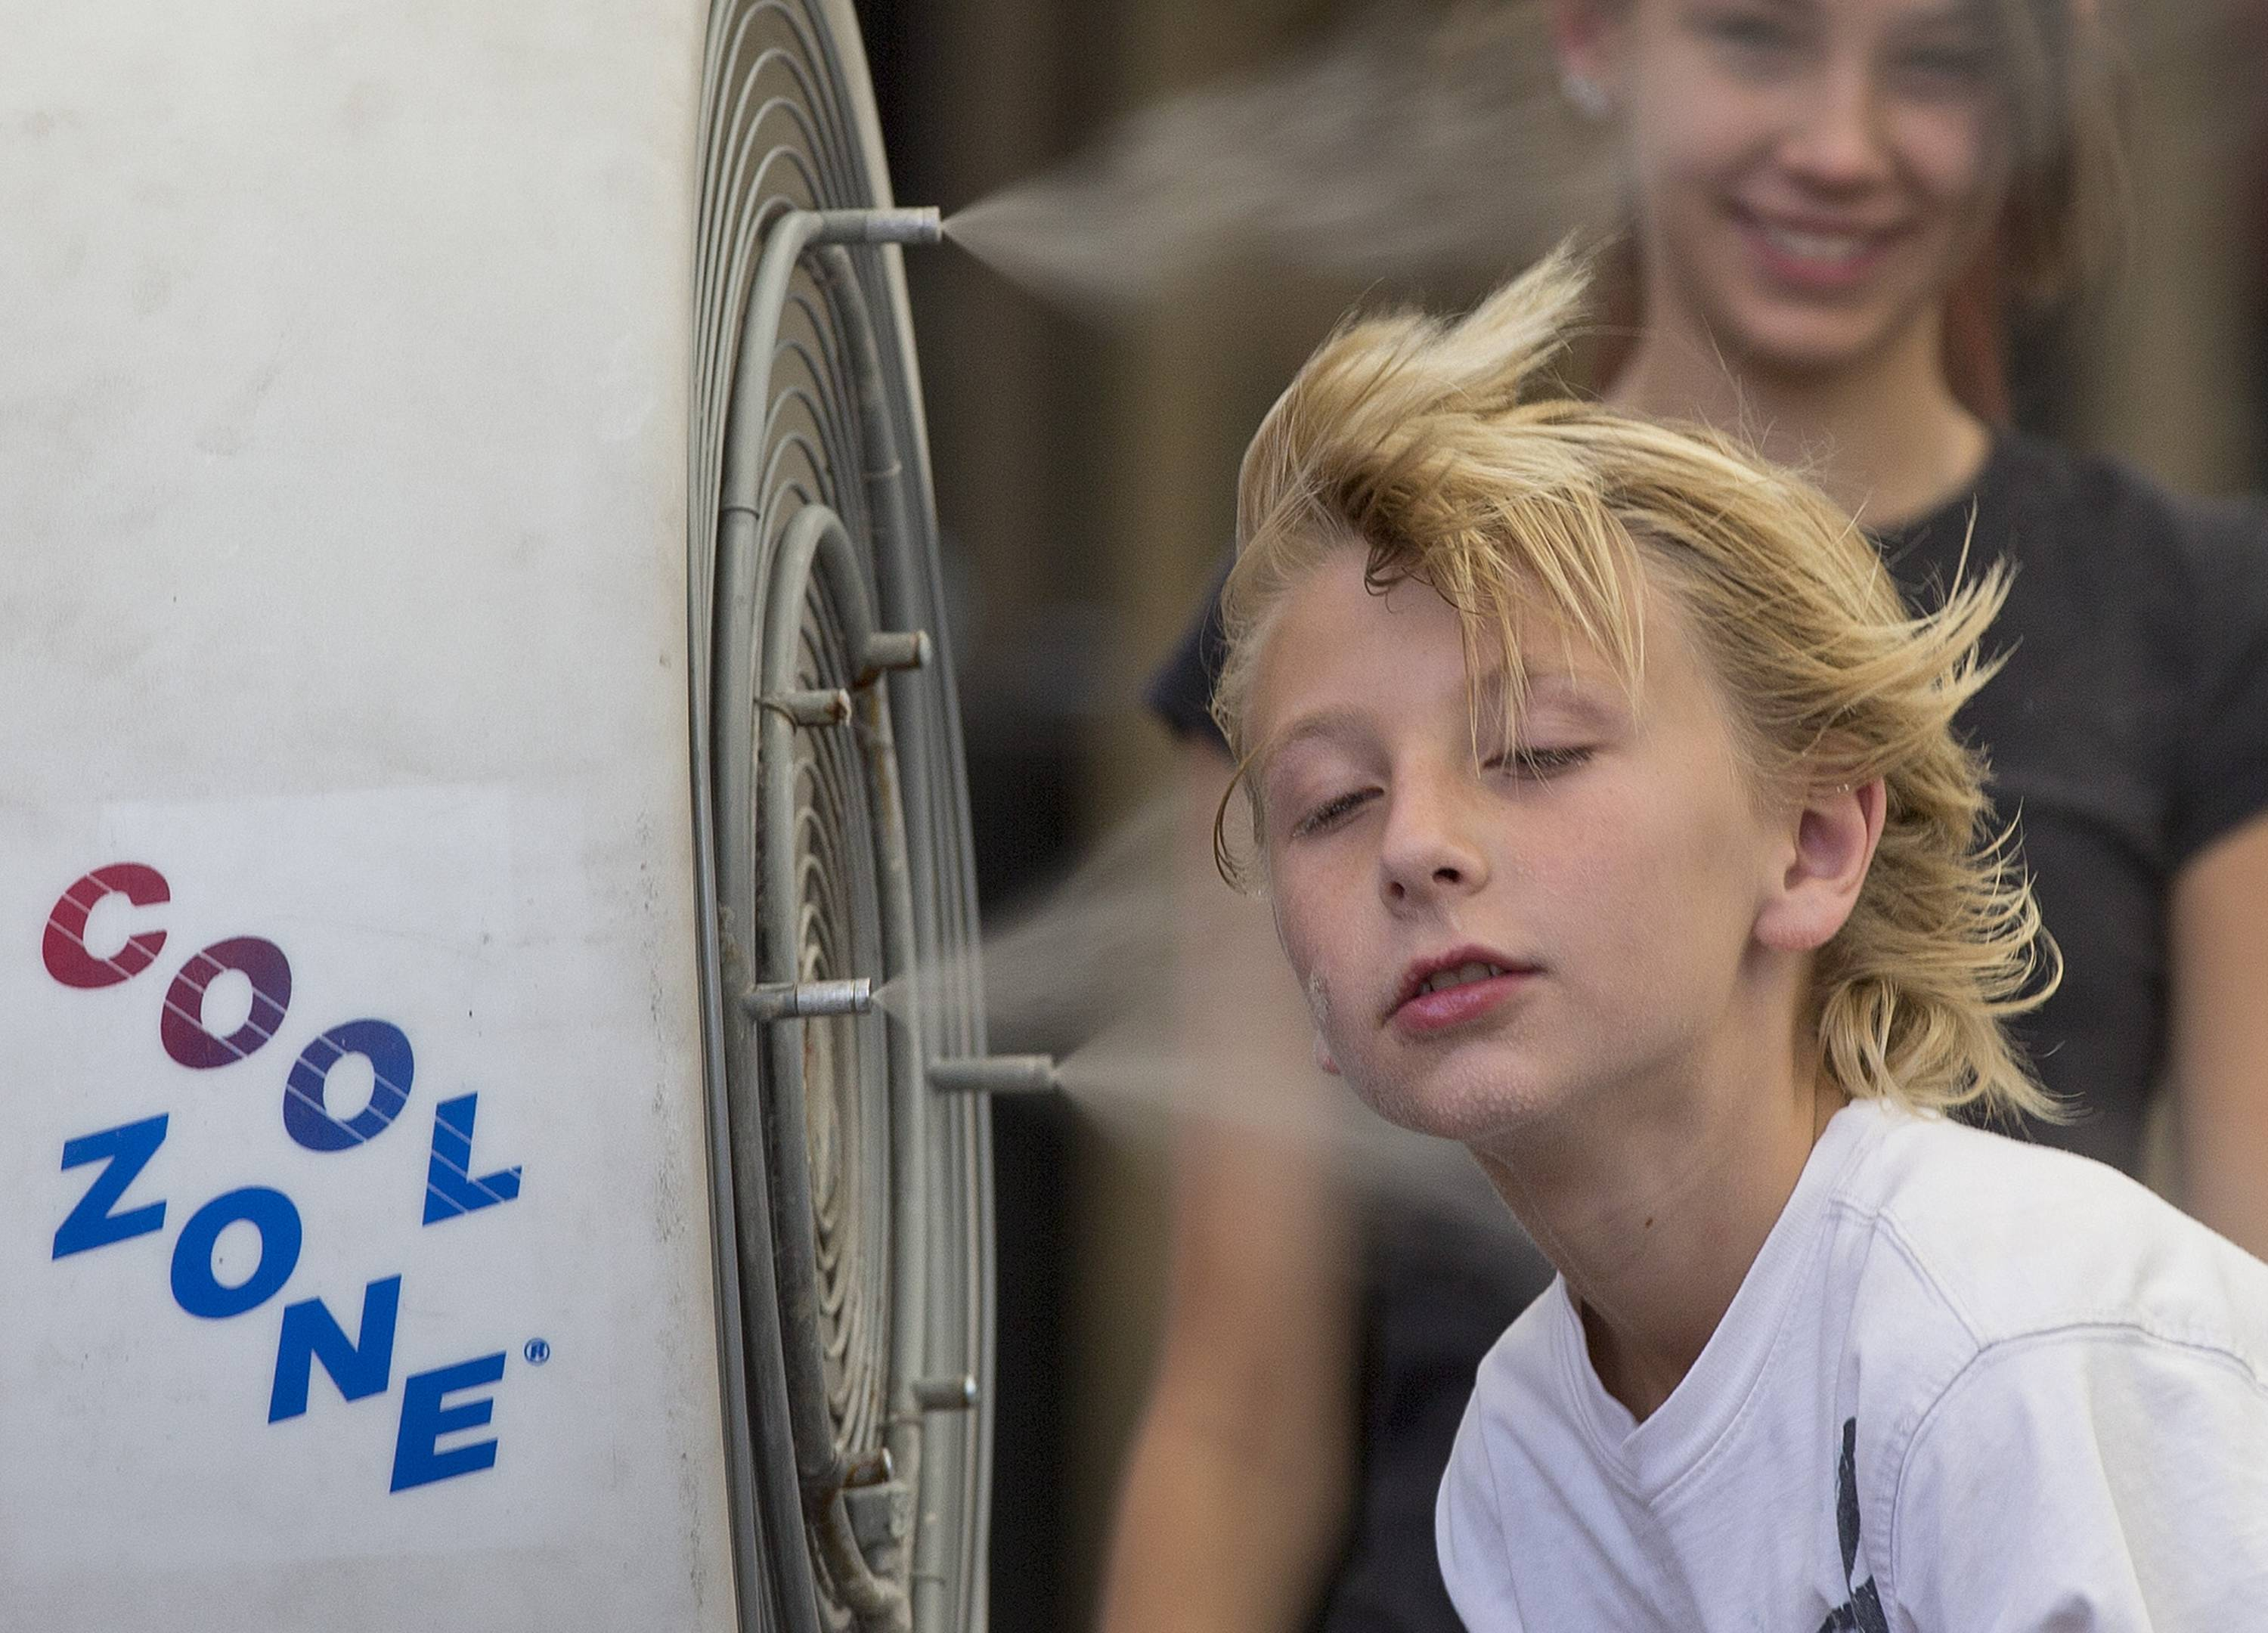 Easton Martin, 10, of Mesa, Ariz., stops to cool off in a misting fan while walking along The Strip with his family in Las Vegas in June 2013. An Associated Press analysis of federal temperature records shows Nevada's capital city, Carson City has warmed the most in the last 30 years than any other city in the nation.